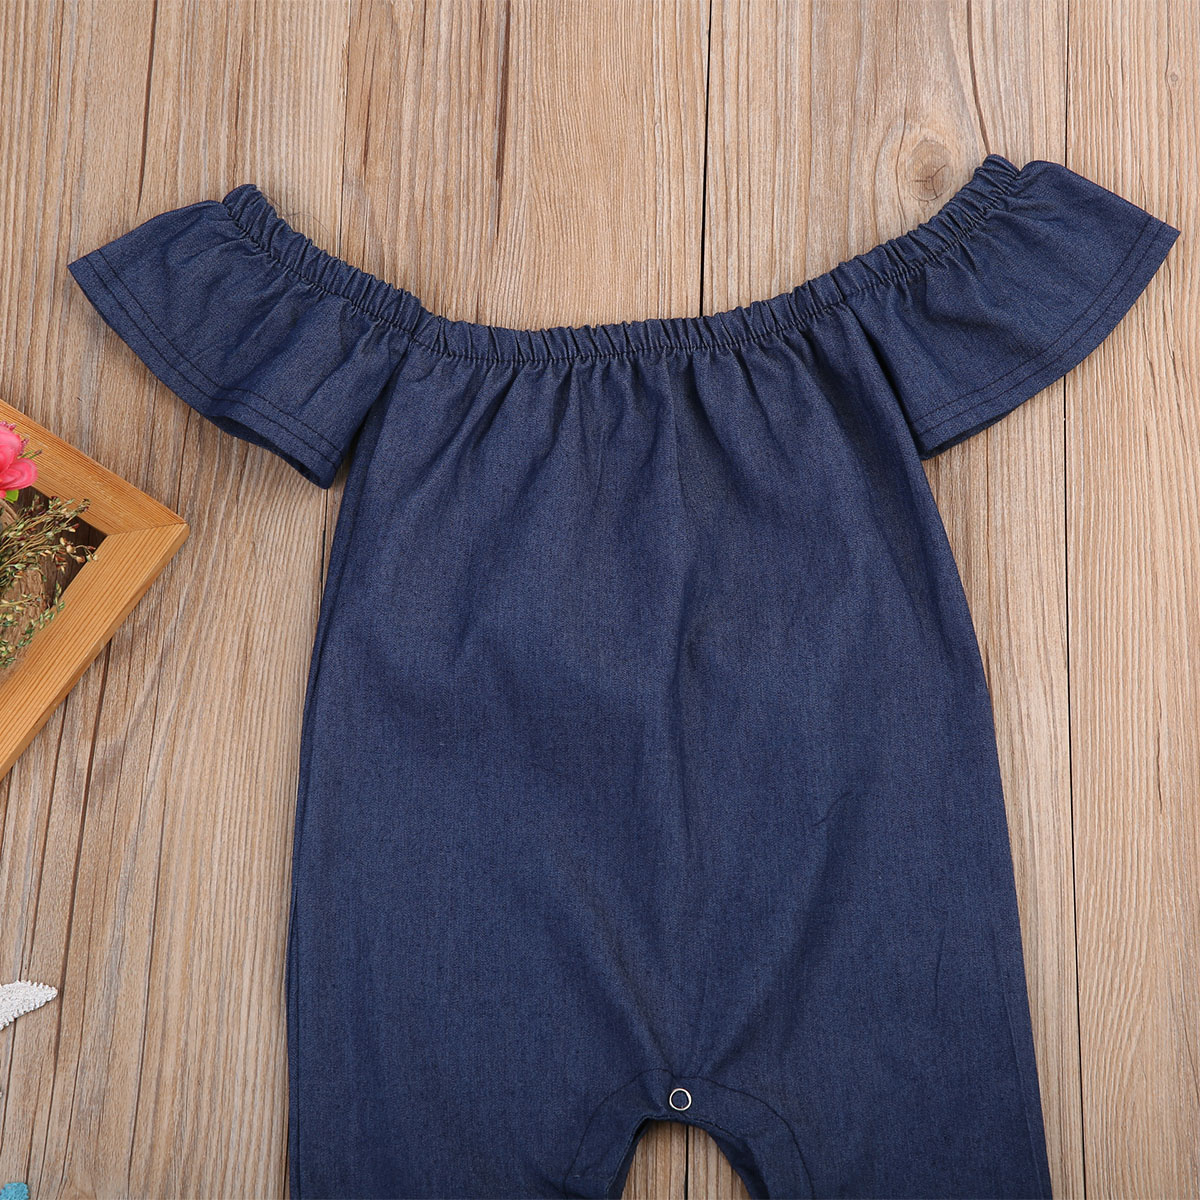 fb616c3c920 Toddler Summer Baby Girl Clothes Infant Kids Jeans Denim Off Shoulder Short  Sleeve Jumpsuit Romper Playsuit Clothes Outfits 0 3Y-in Rompers from Mother  ...